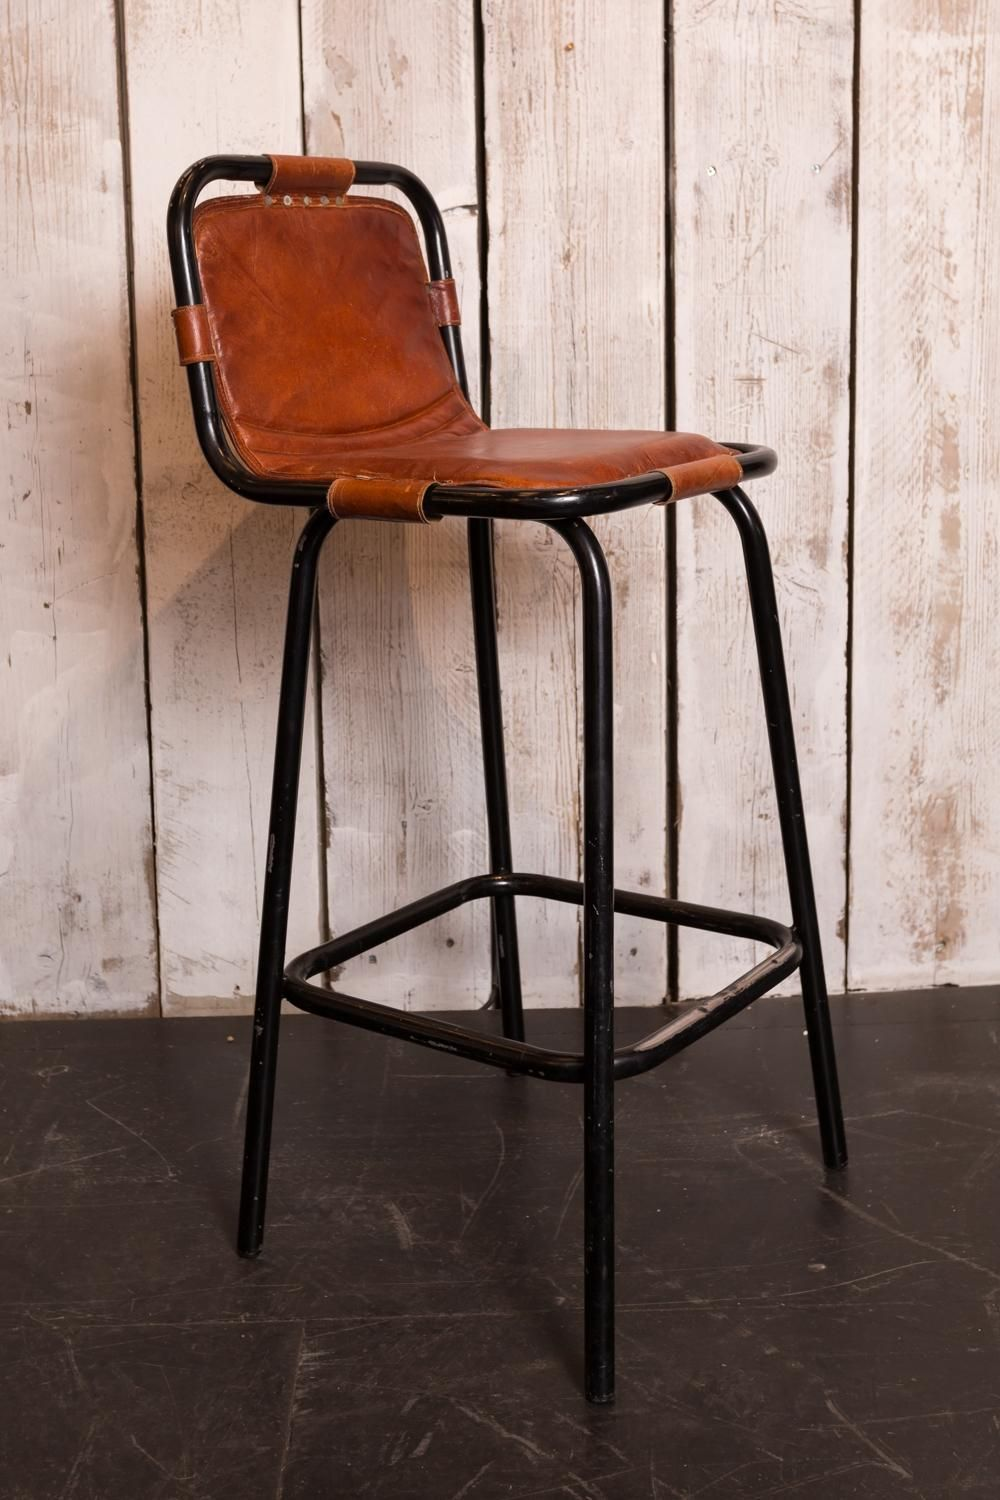 Leather Bar Stool In Benches Stools In 2020 Leather Bar Stools